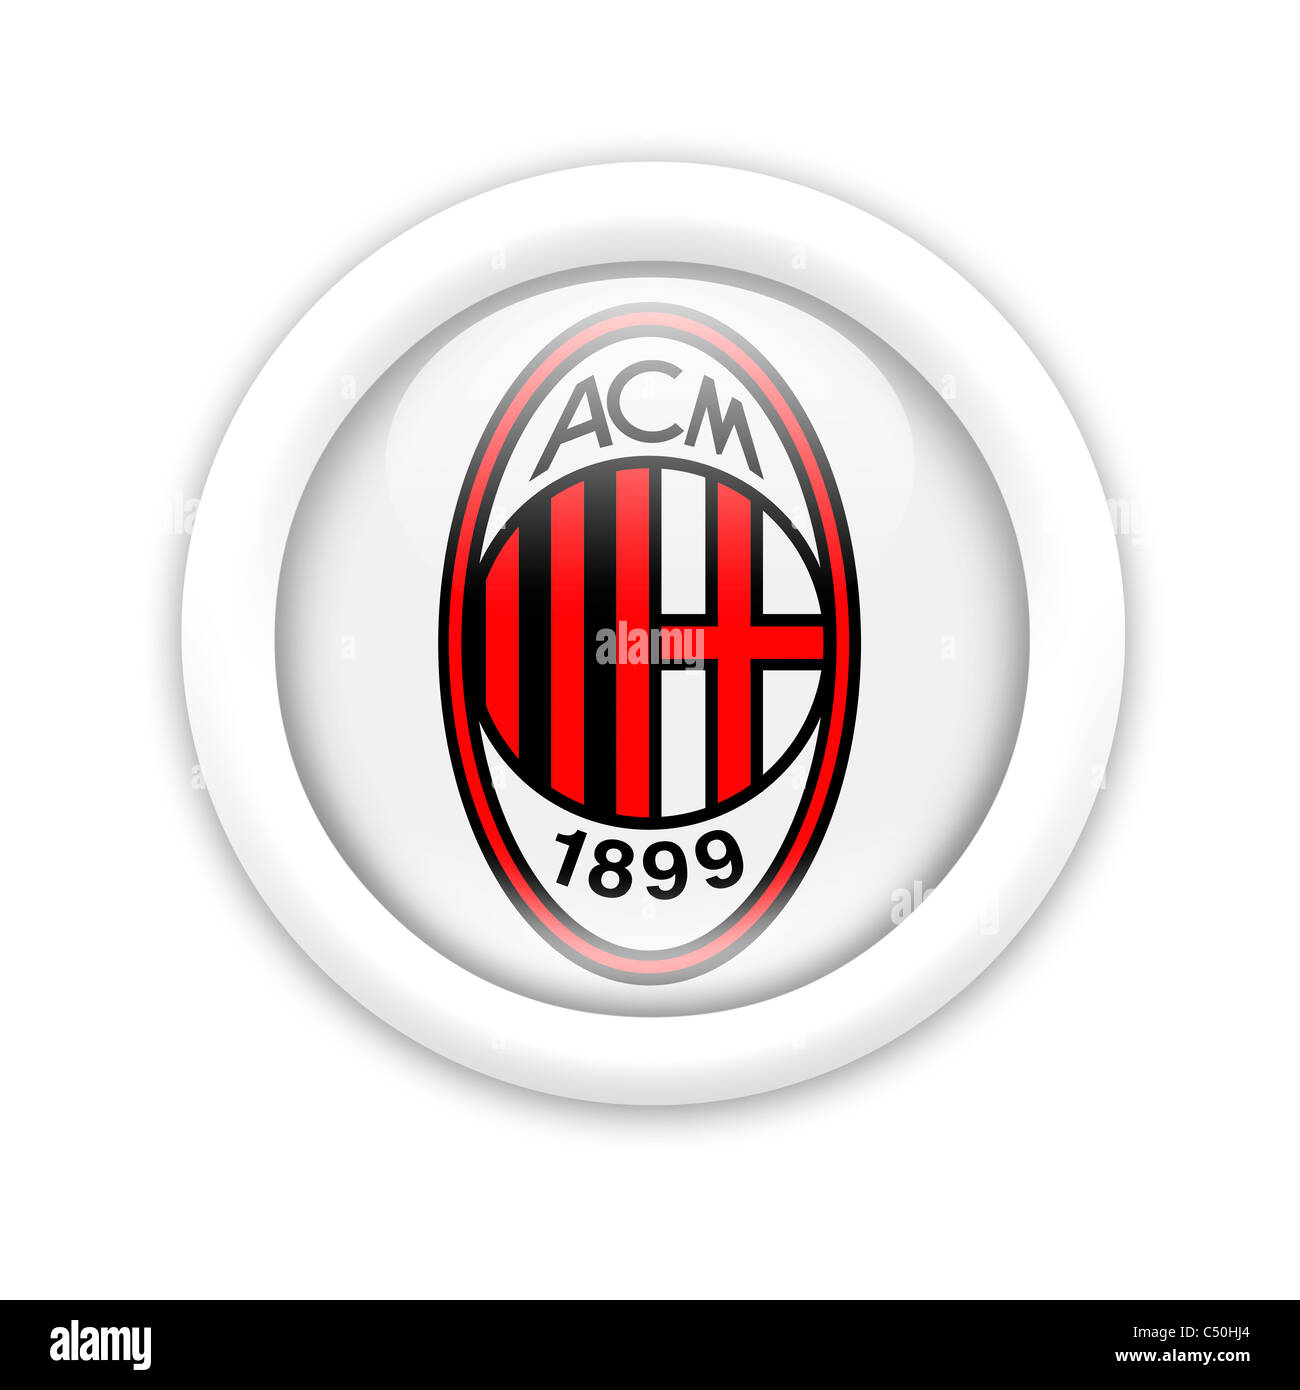 AC A.C. Milan logo flag symbol icon Stock Photo: 37507852 - Alamy